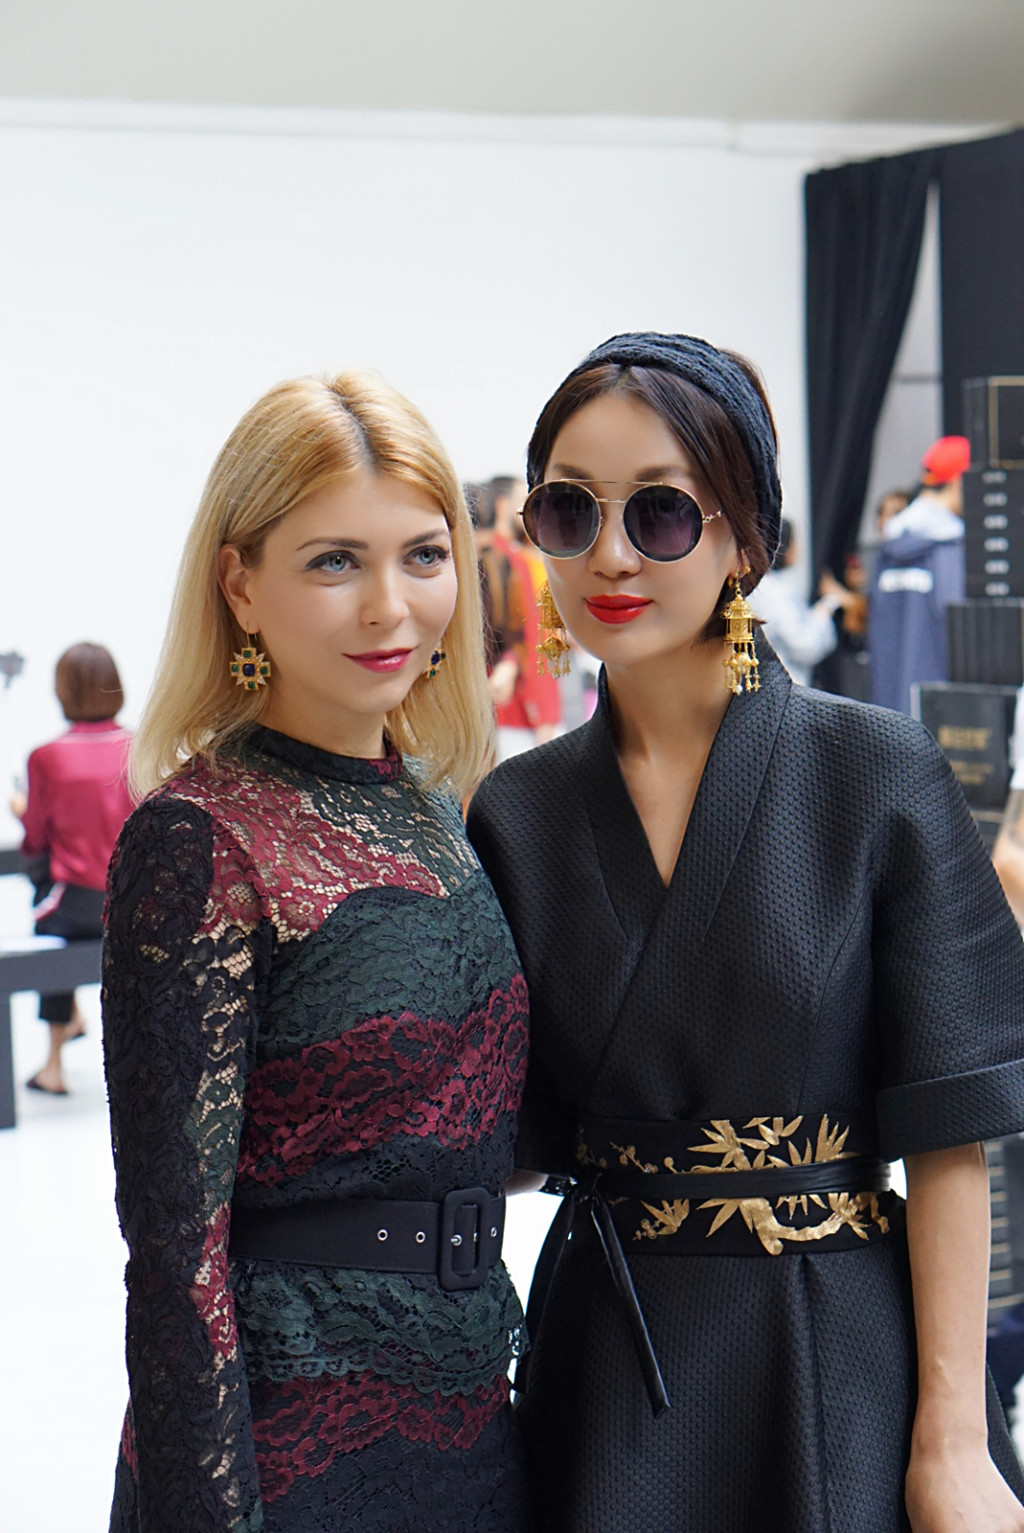 Yuliya Savytska and designer Xiong Ying of Heaven Gaia at Alexstorm Fashion Show